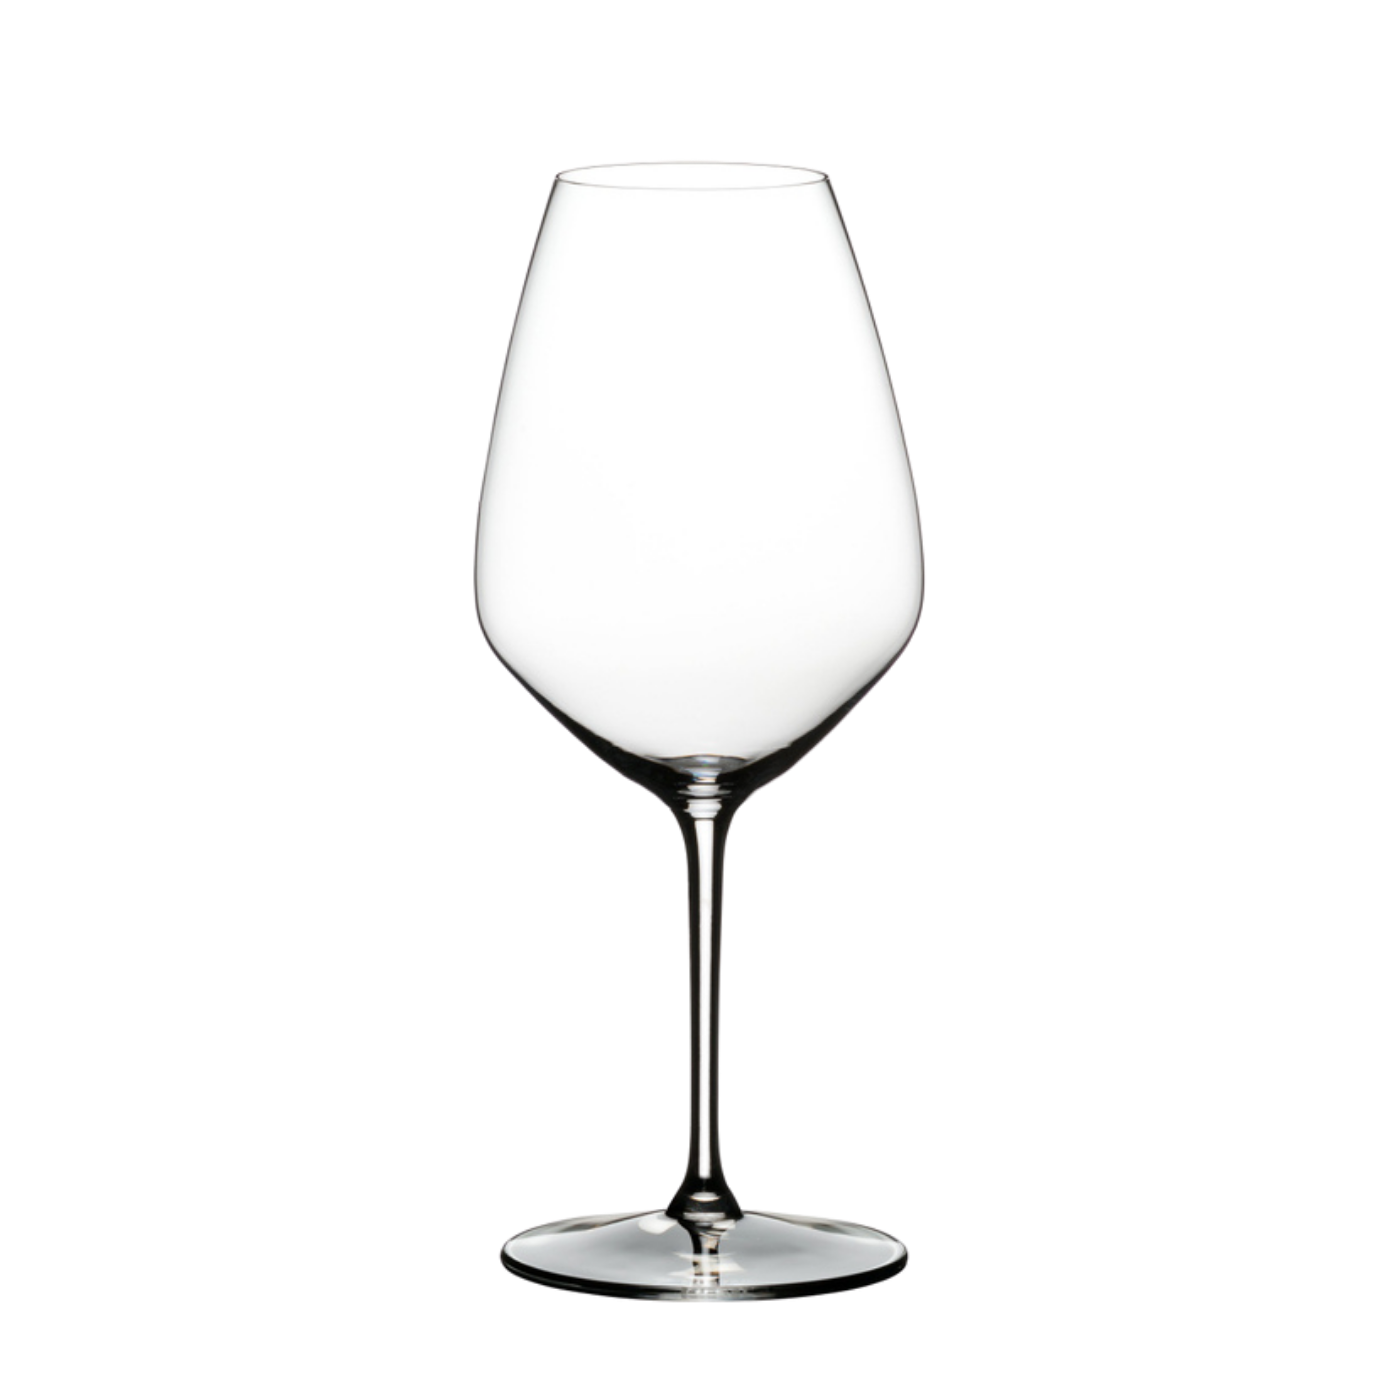 Riedel Extreme Syrah/Shiraz Glasses (set of 2)